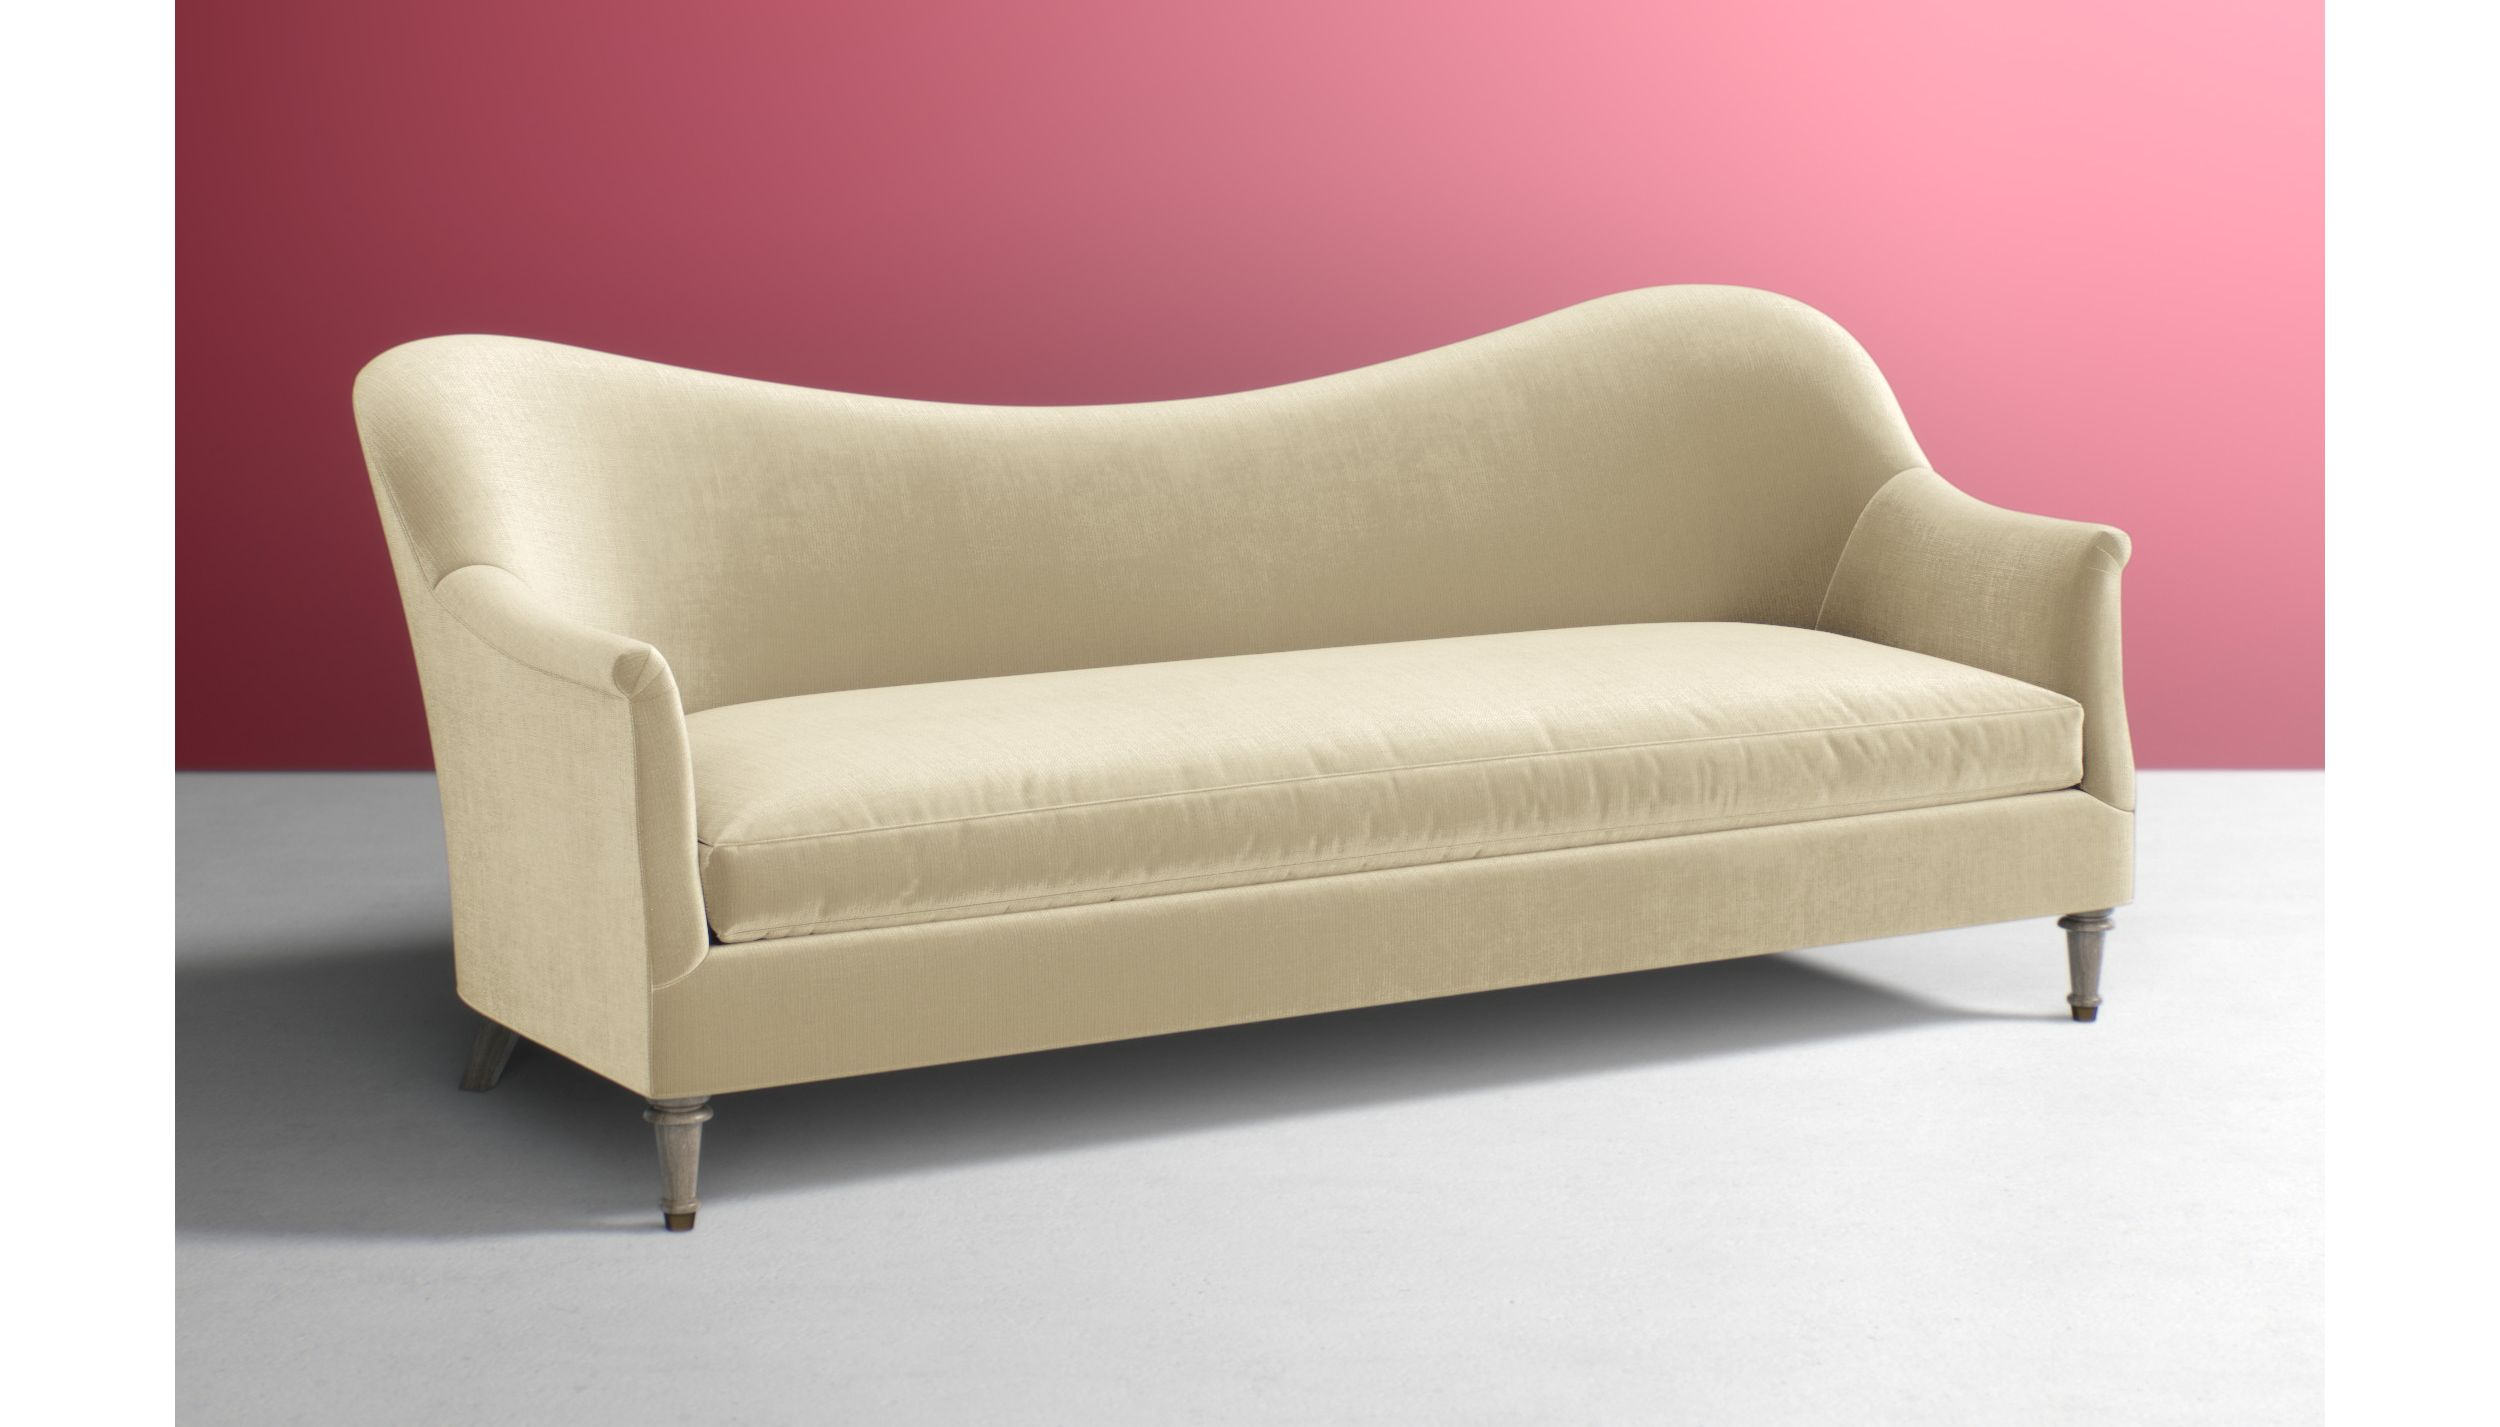 Pied A Terre Sofa Anthropologie The Olive House Sofabed Fabric Lux Grey